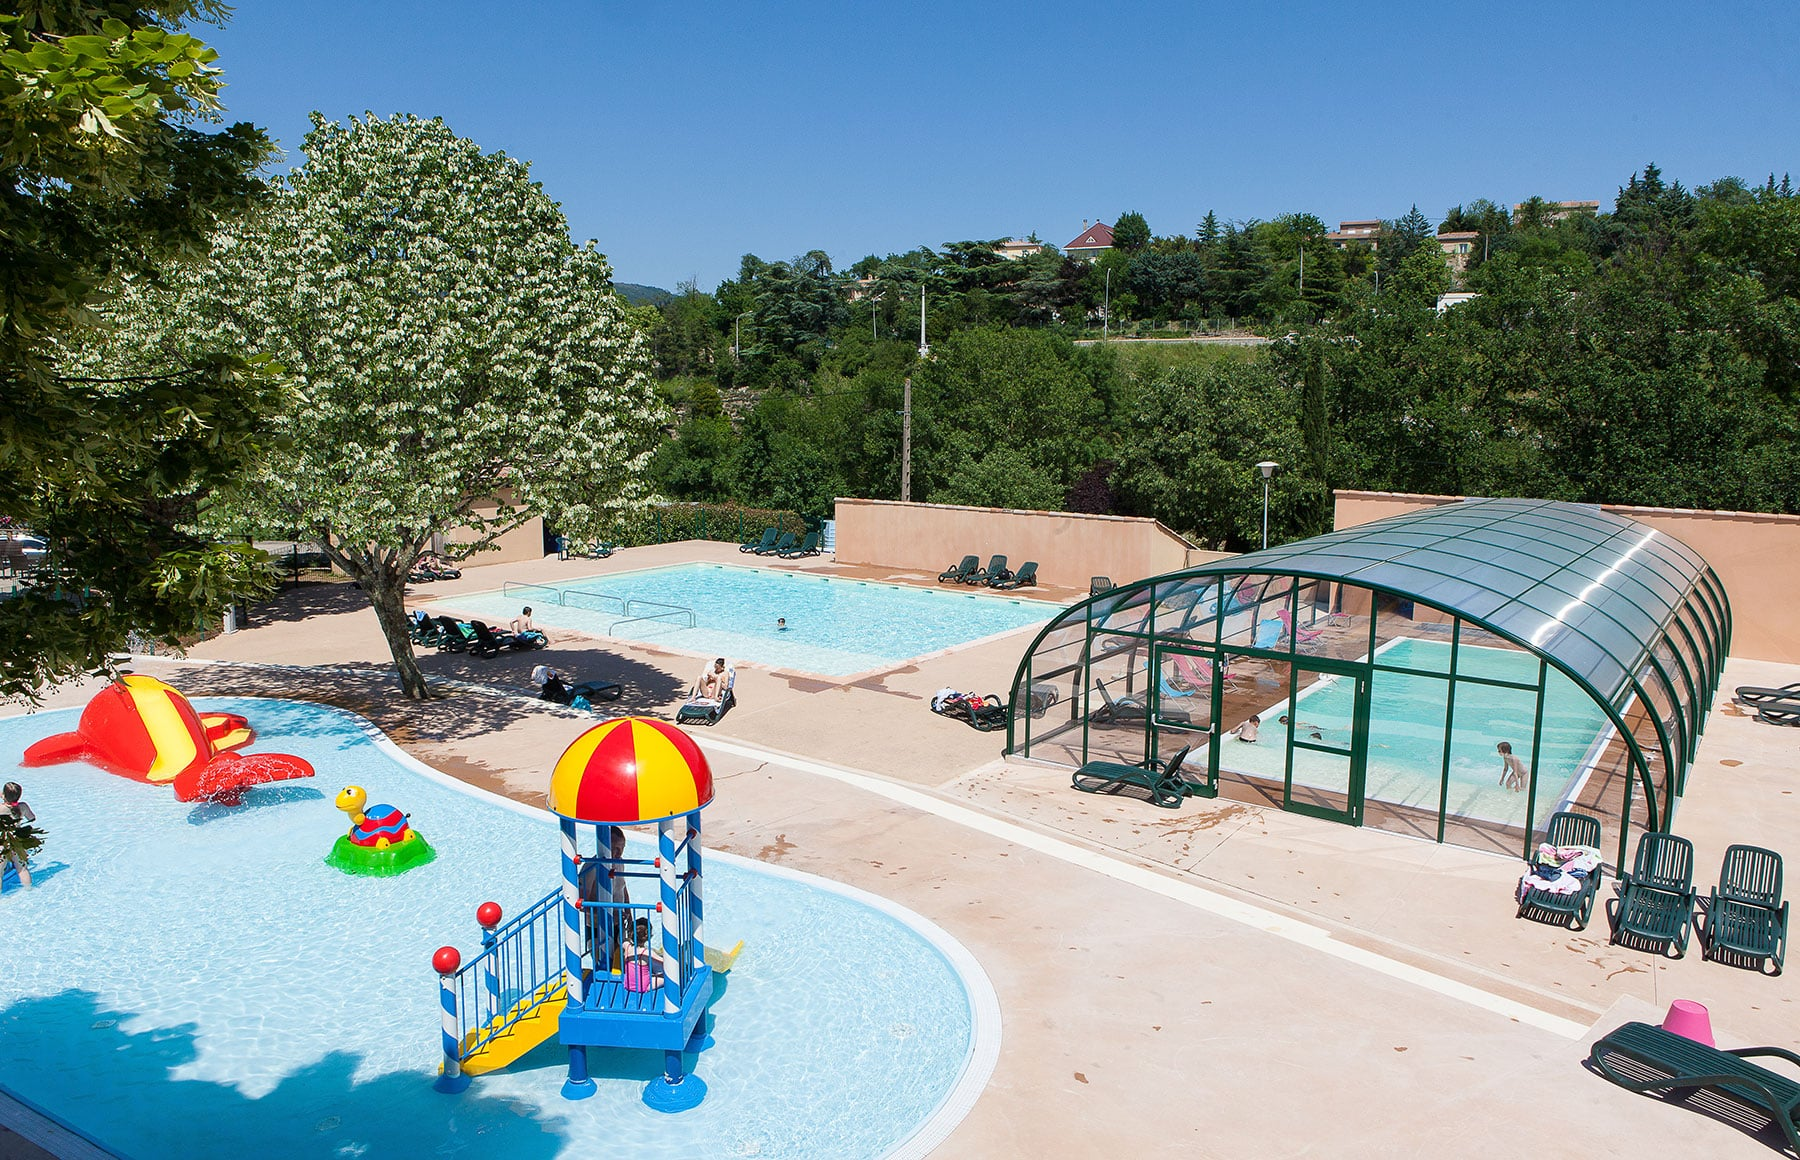 Camping rhone alpes piscine chauffee for Piscine couverte normandie